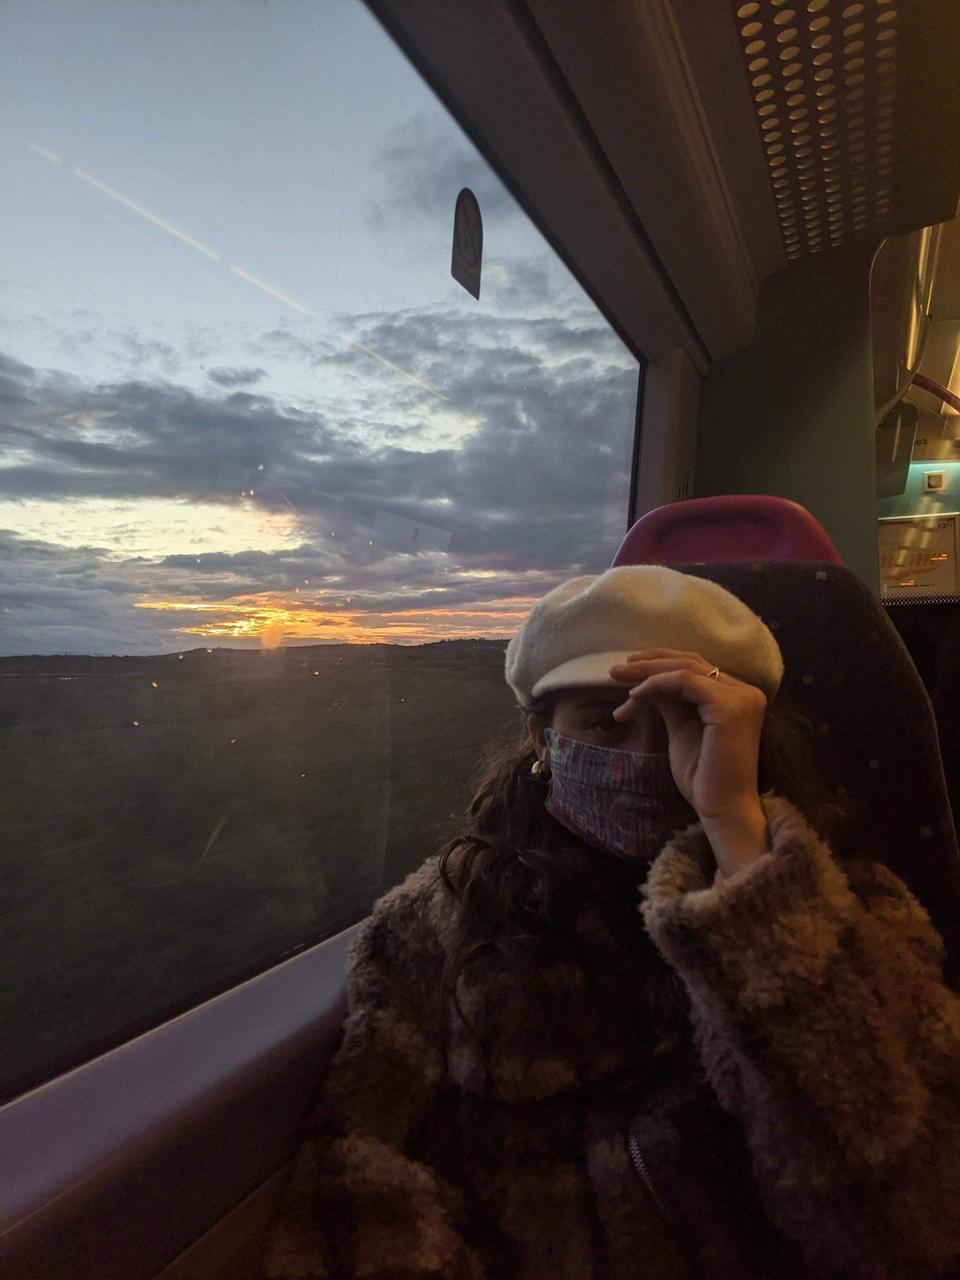 <p>Olivia Mesce, a non-driver, said she was left with no choice but to take train back to Manchester</p>Supplied